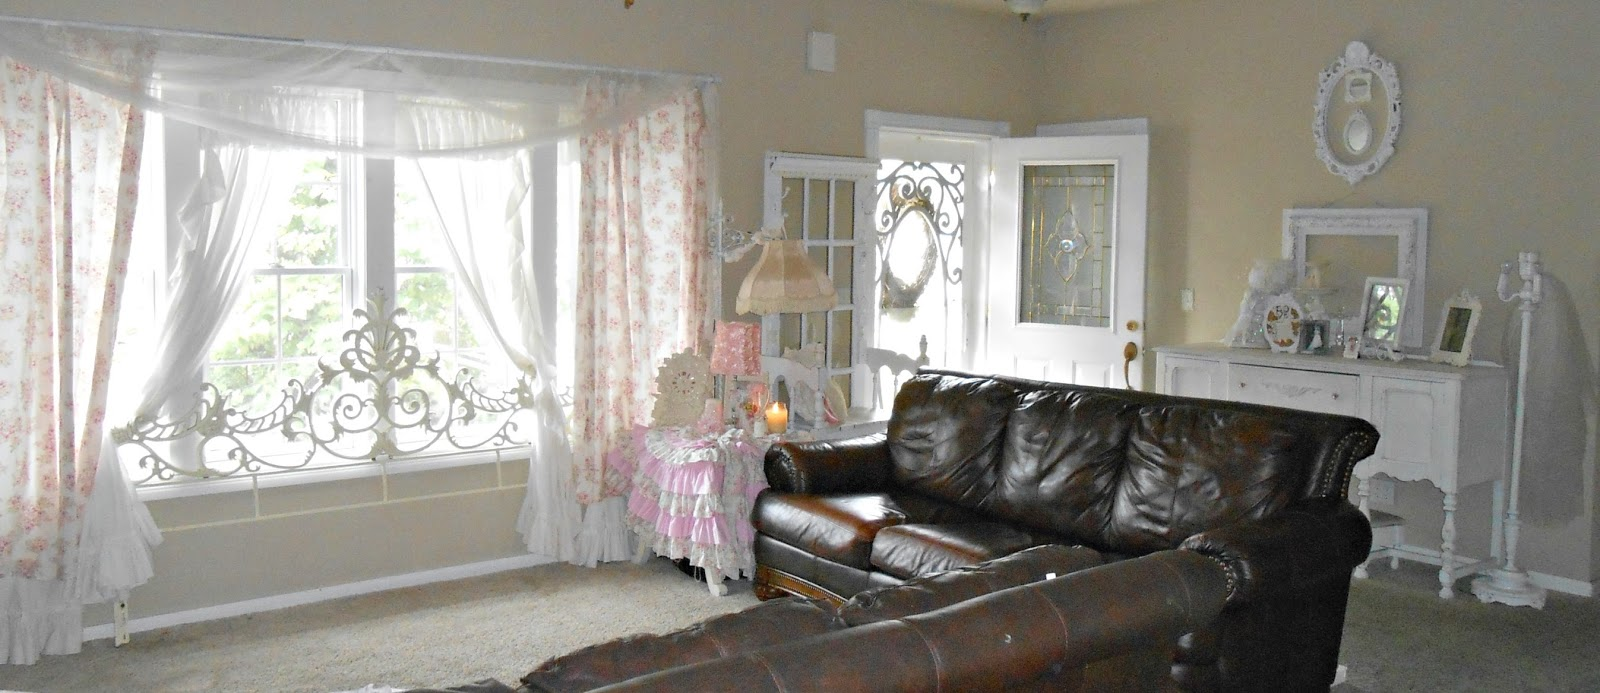 Olivia's Romantic Home: Shabby Chic Living Room